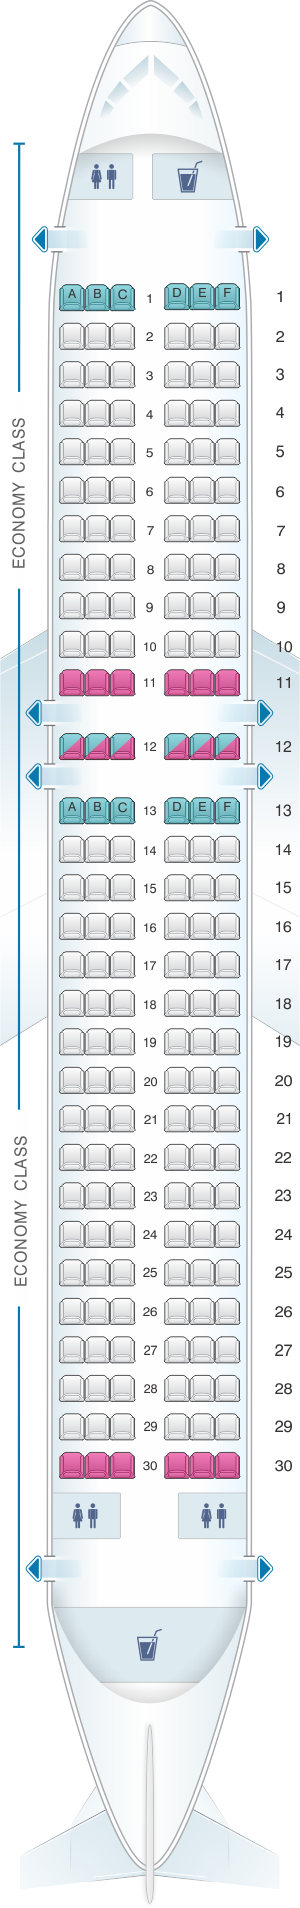 Seat map for Wizz Air Airbus A320